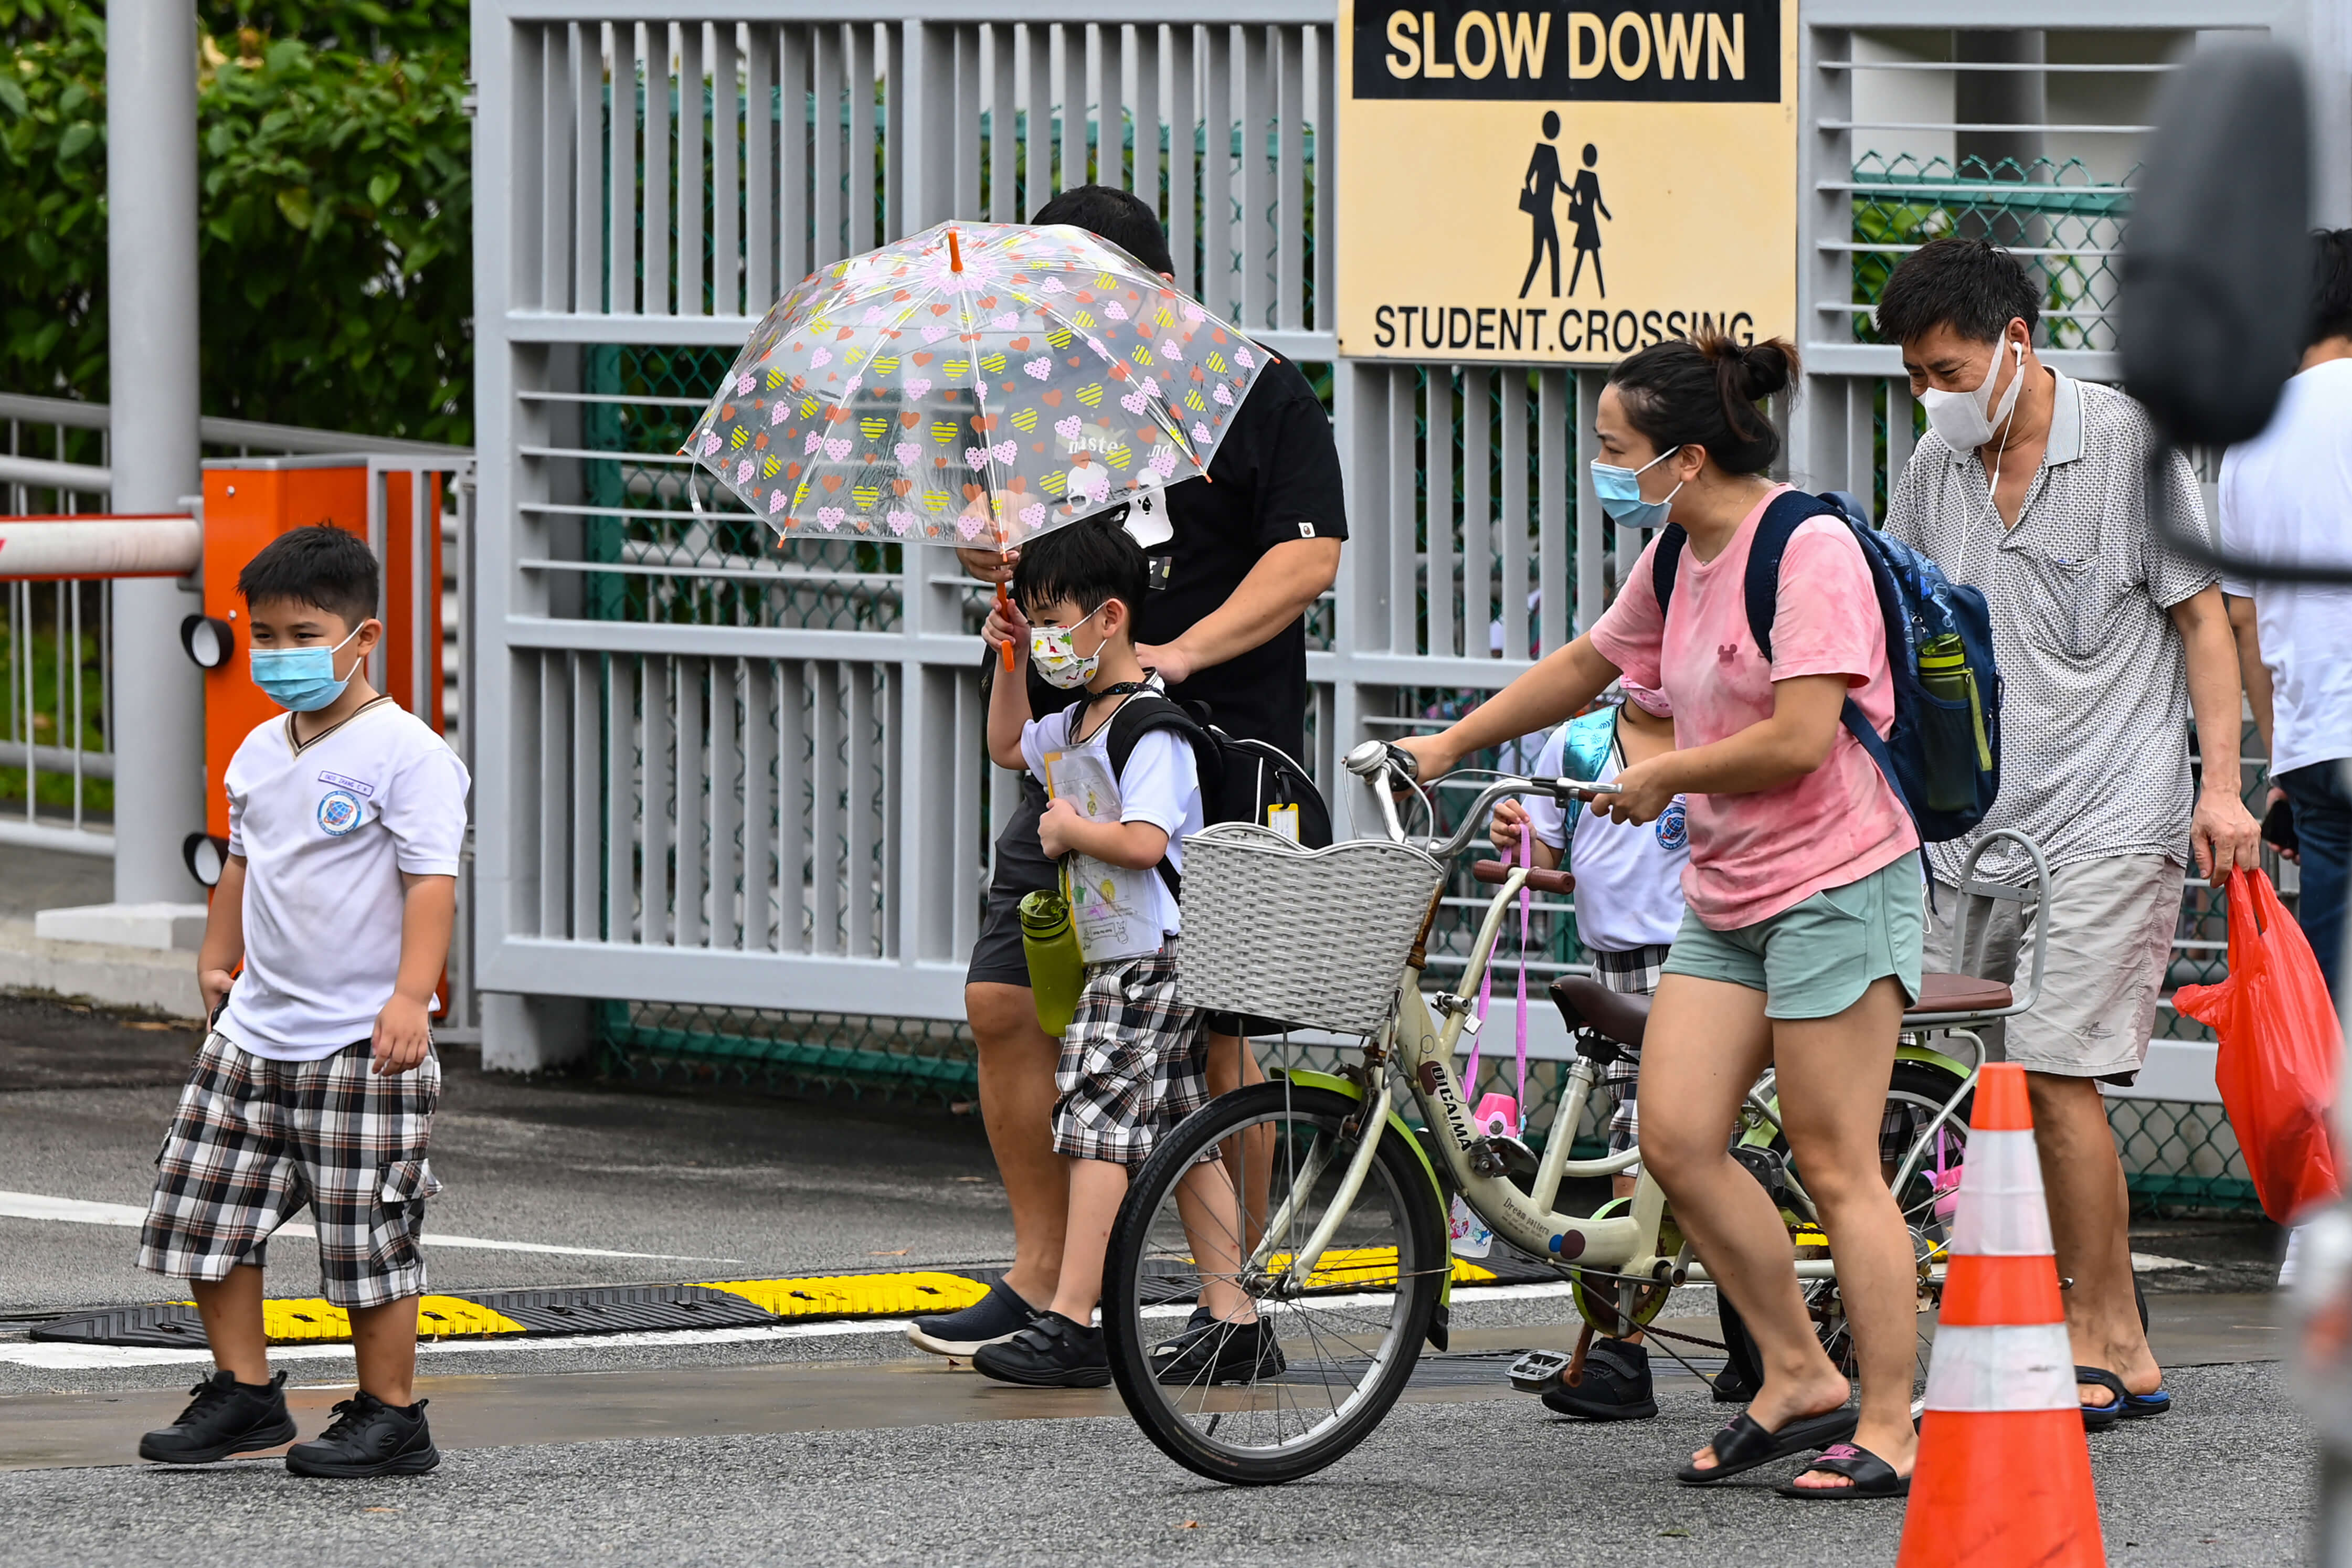 Singapore and Taiwan shut schools to battle outbreaks